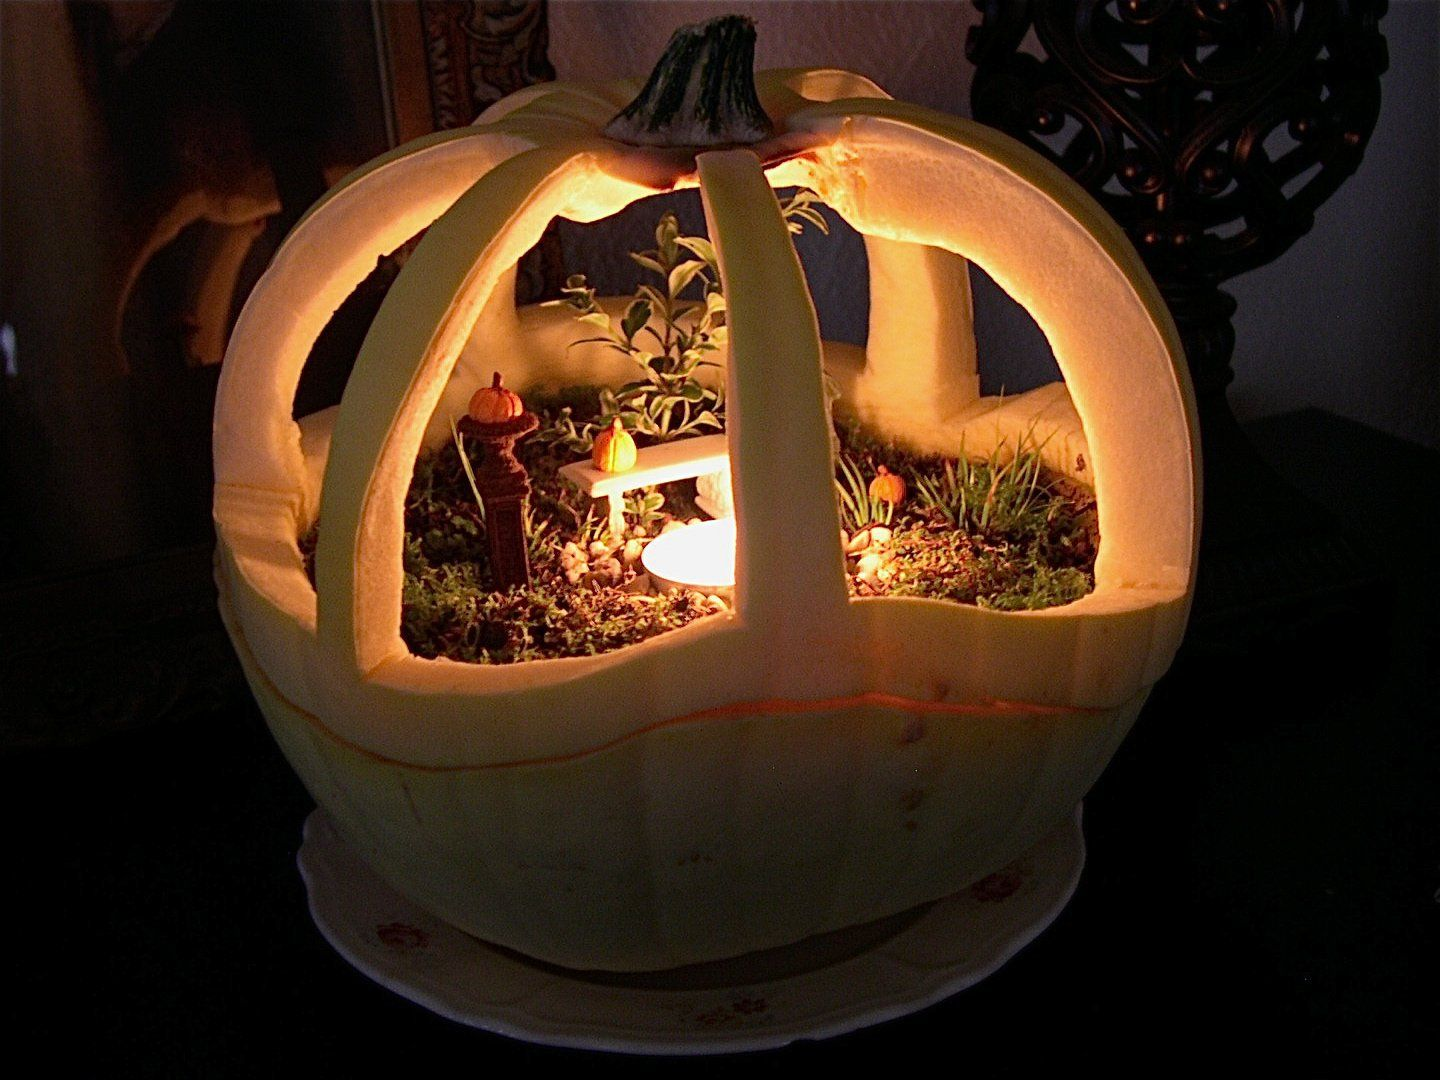 Turn your pumpkin into a spooky, little, nighttime scene this year!